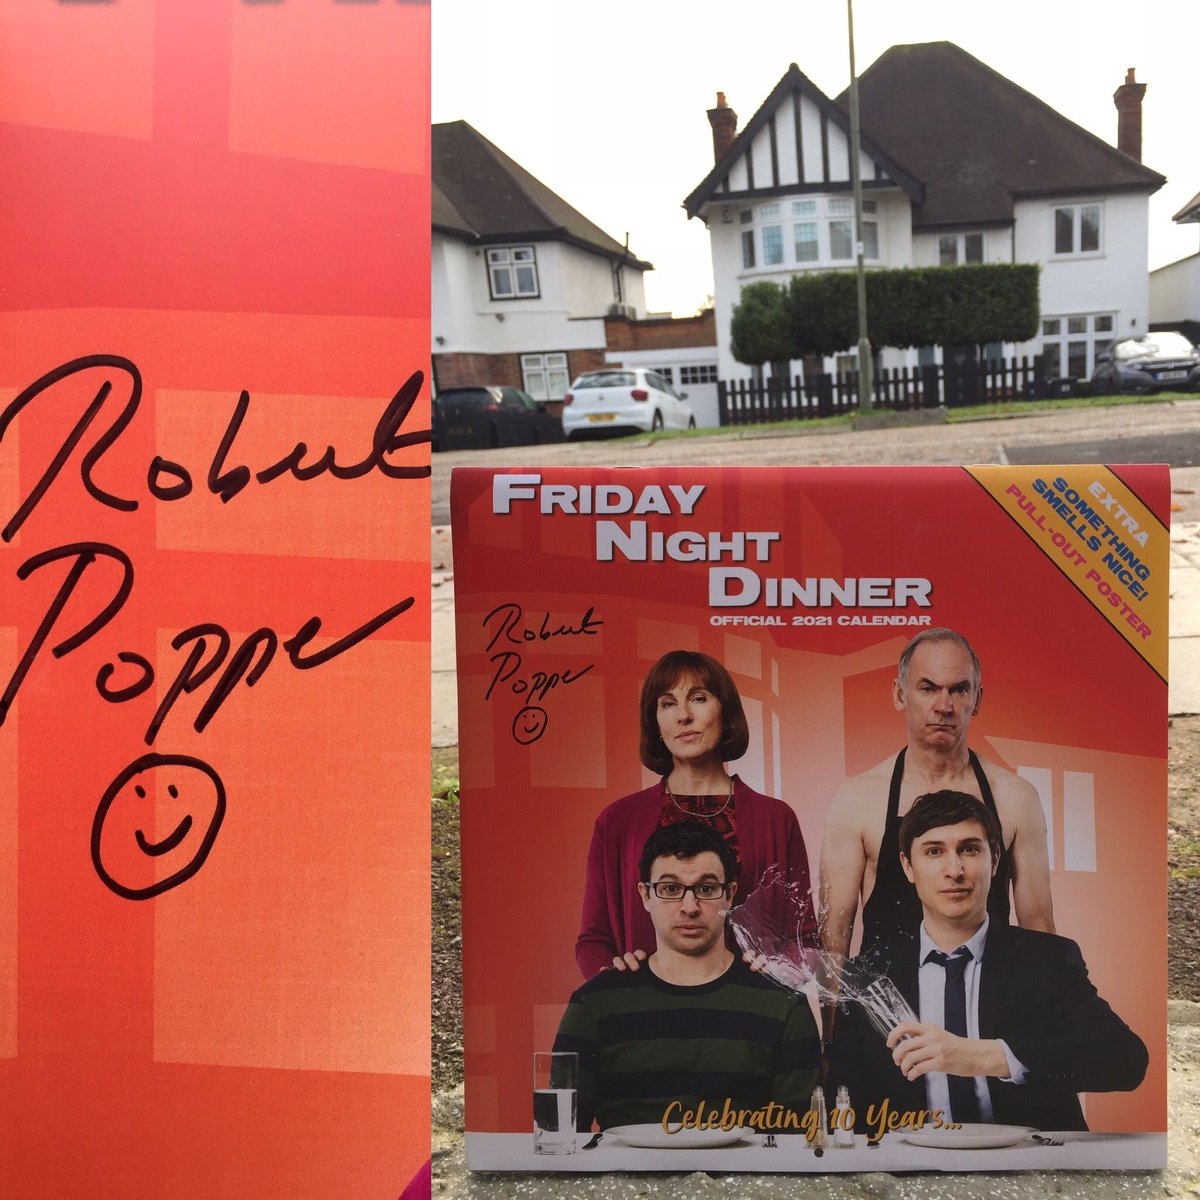 Here is your chance to own a SPECIAL EDITION Friday Night Dinner 2021 Official Calendar signed by writer, creator and producer @robertpopper!  Available now at the official store: